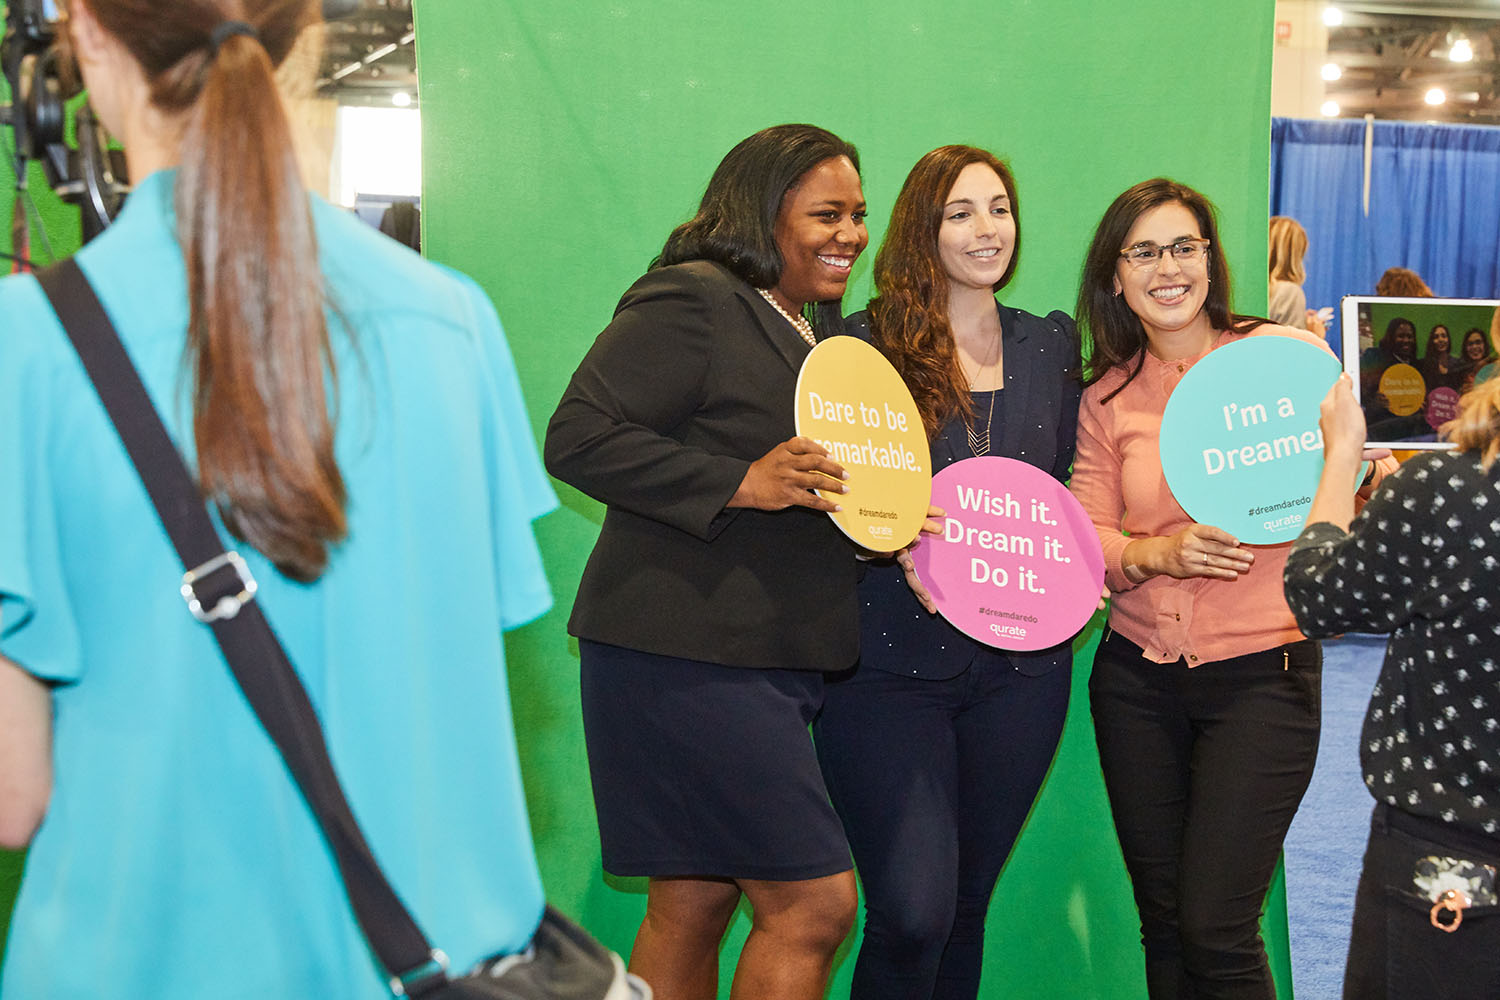 Image 8_PA Conference for Women attendees particpate in Qurate Retail Group's #dreamdaredo social activation.